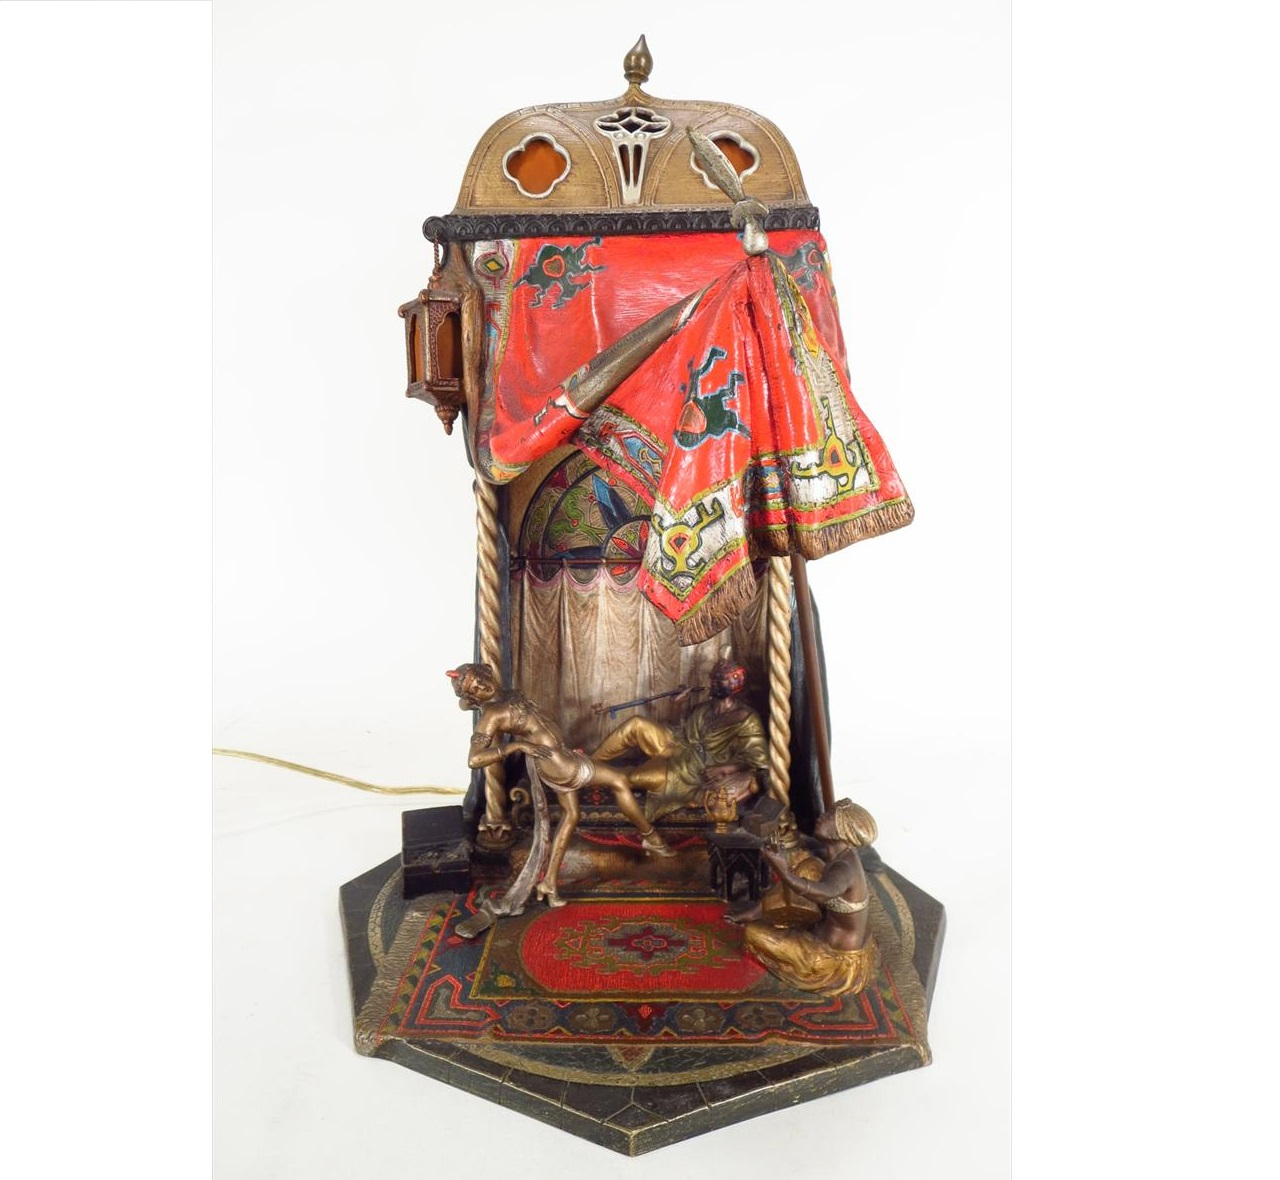 Orientalist Cold-Painted Bronze Table Lamp, Viennese, Late 19th C., Man Smoking In Tent Being Entertained. Sold For $9,131.